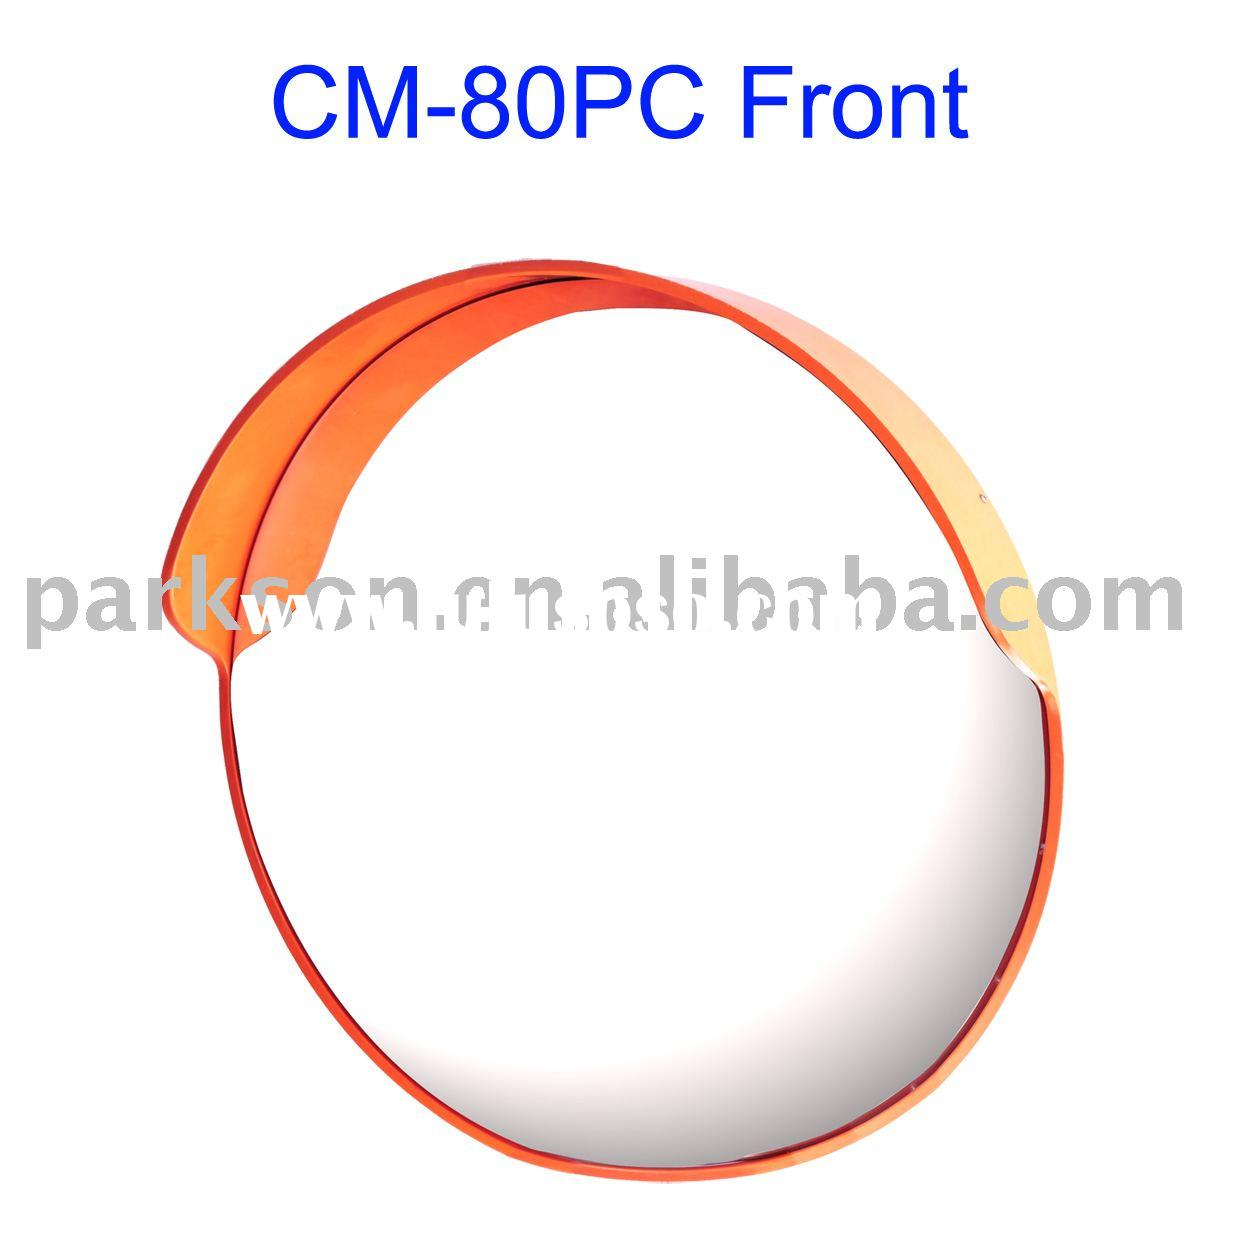 Road Safety Equipment, Traffic Equipment, Convex Mirror